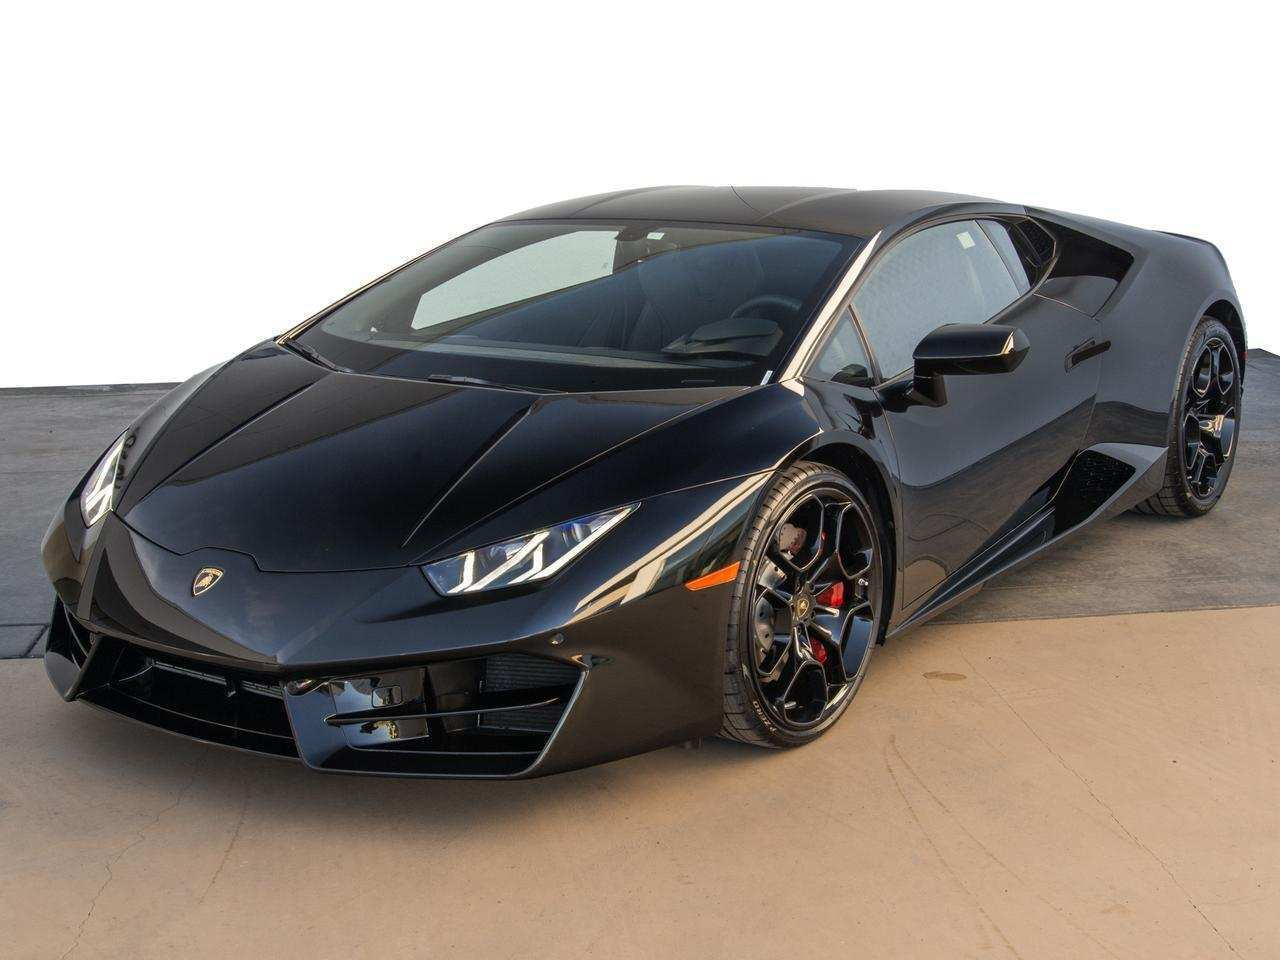 27 New 2019 Lamborghini Huracan Images with 2019 Lamborghini Huracan